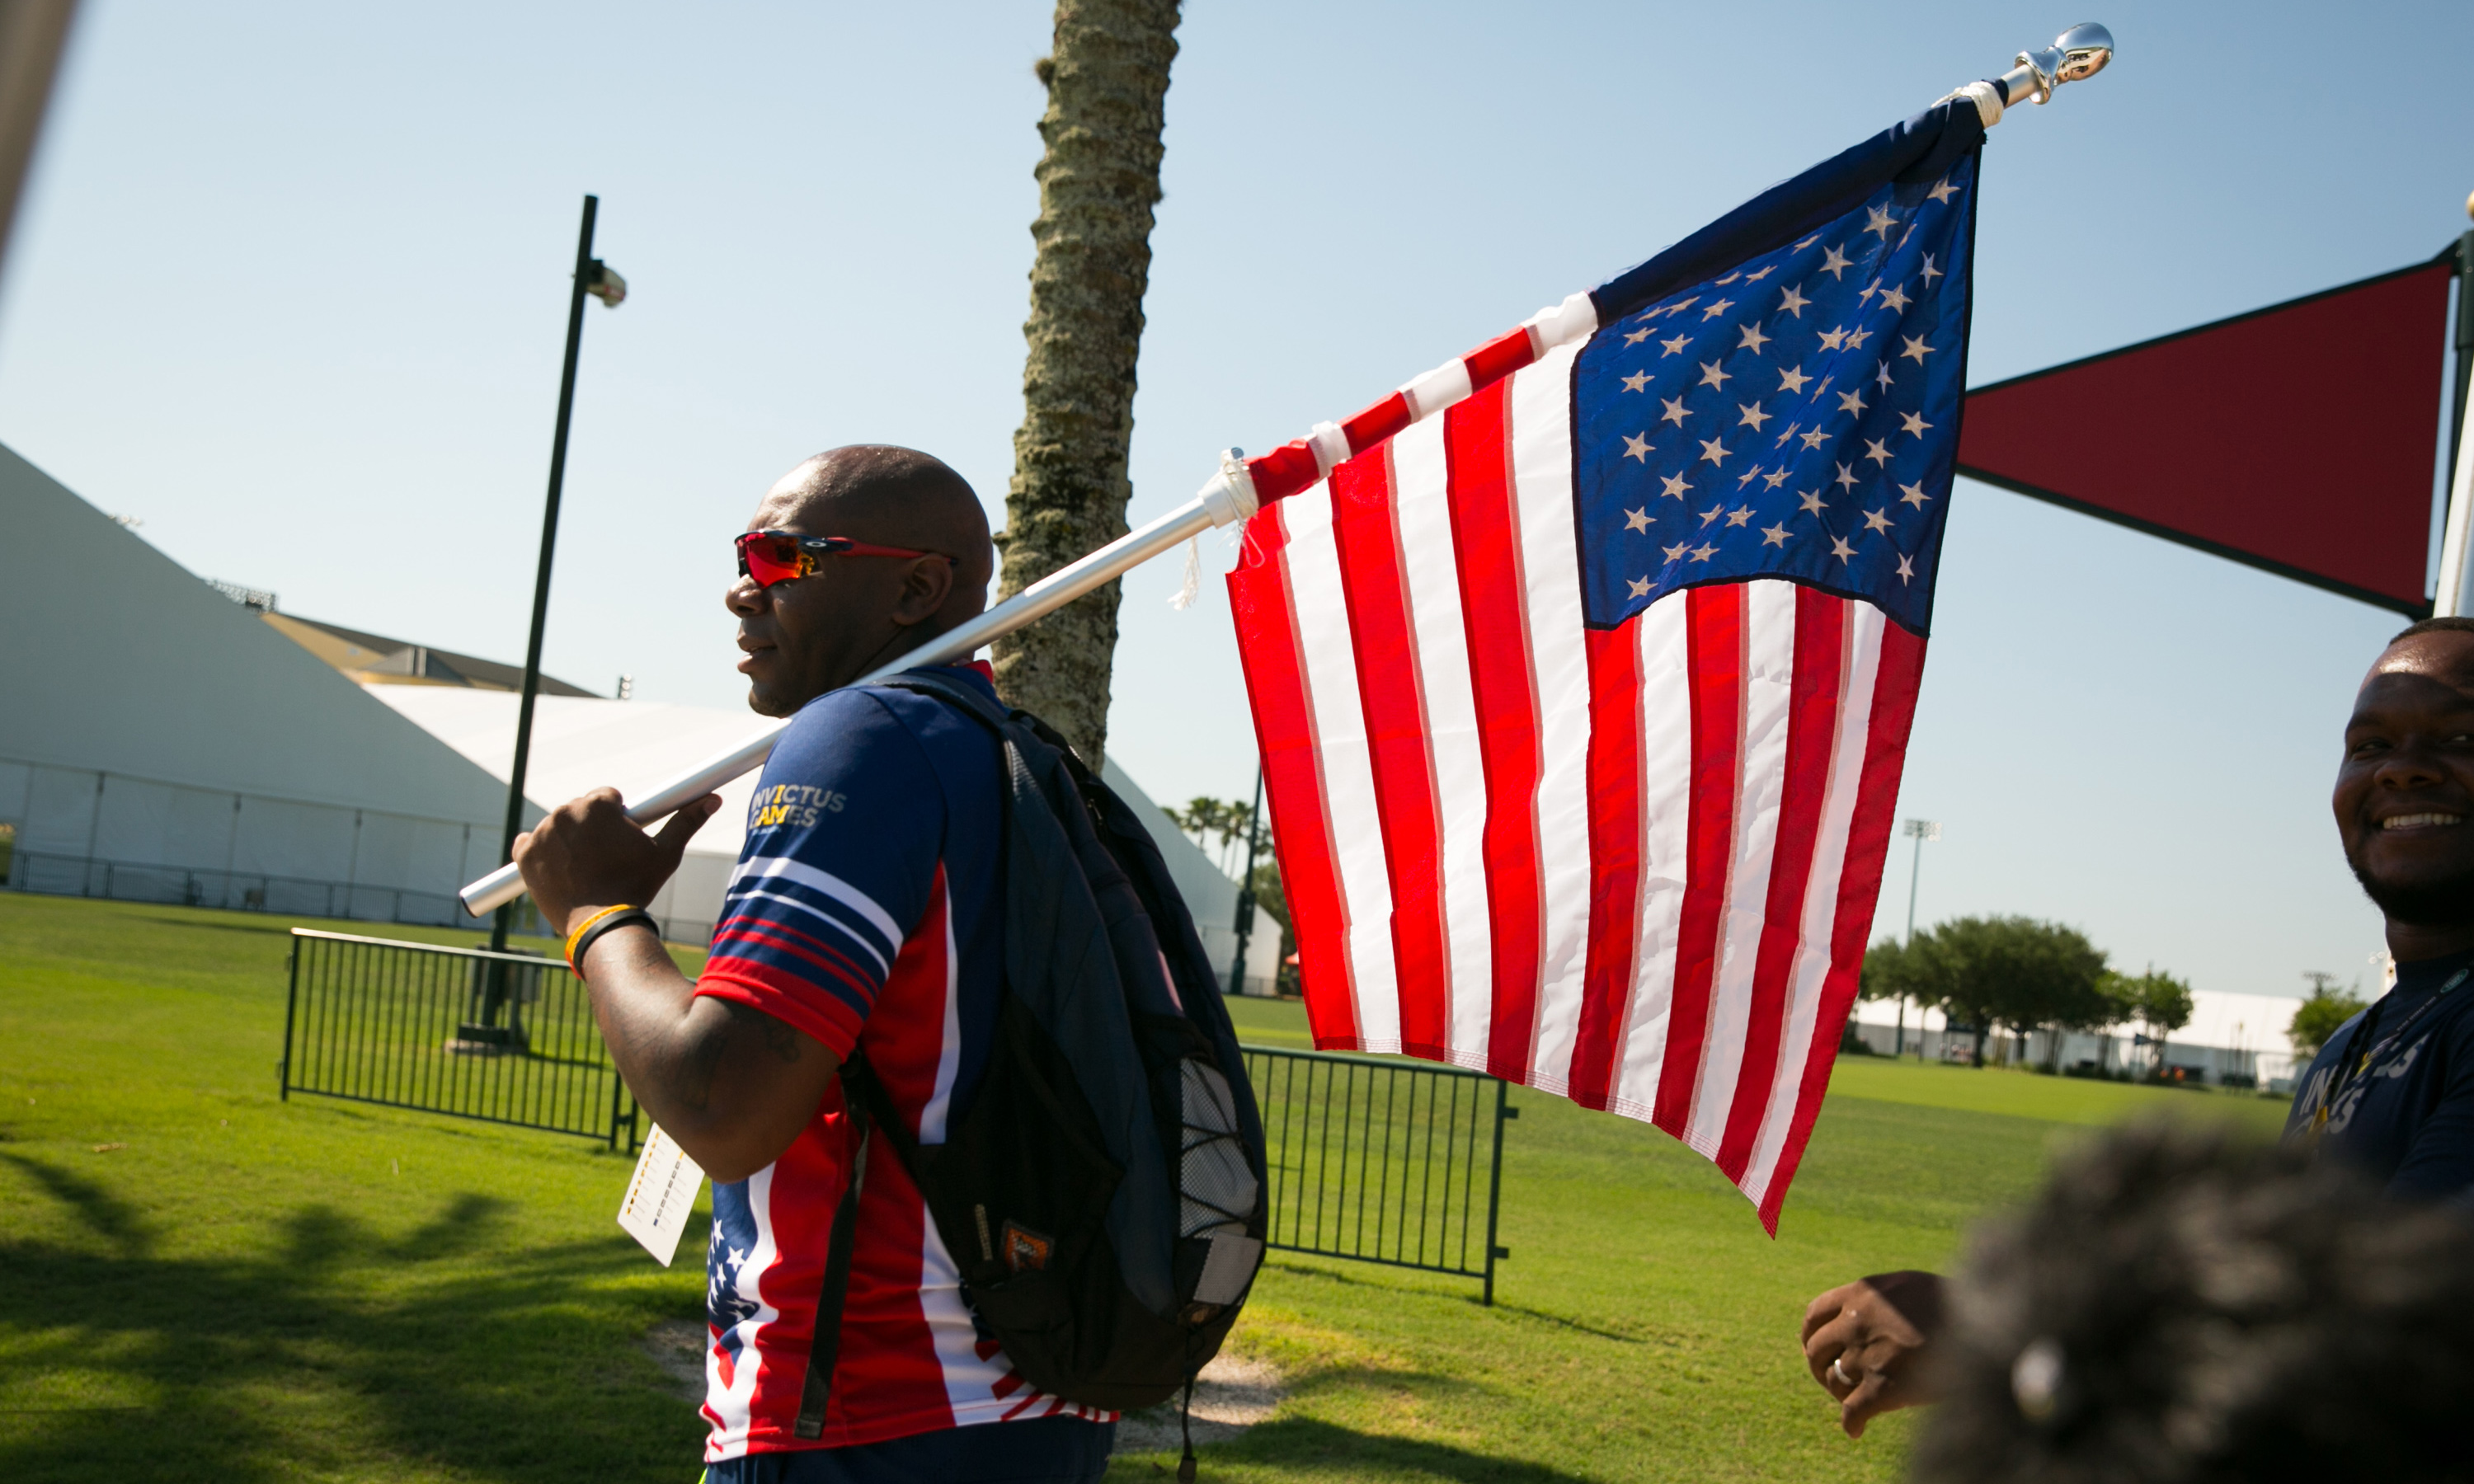 Empowering veterans and their families to successfully reenter civilian life